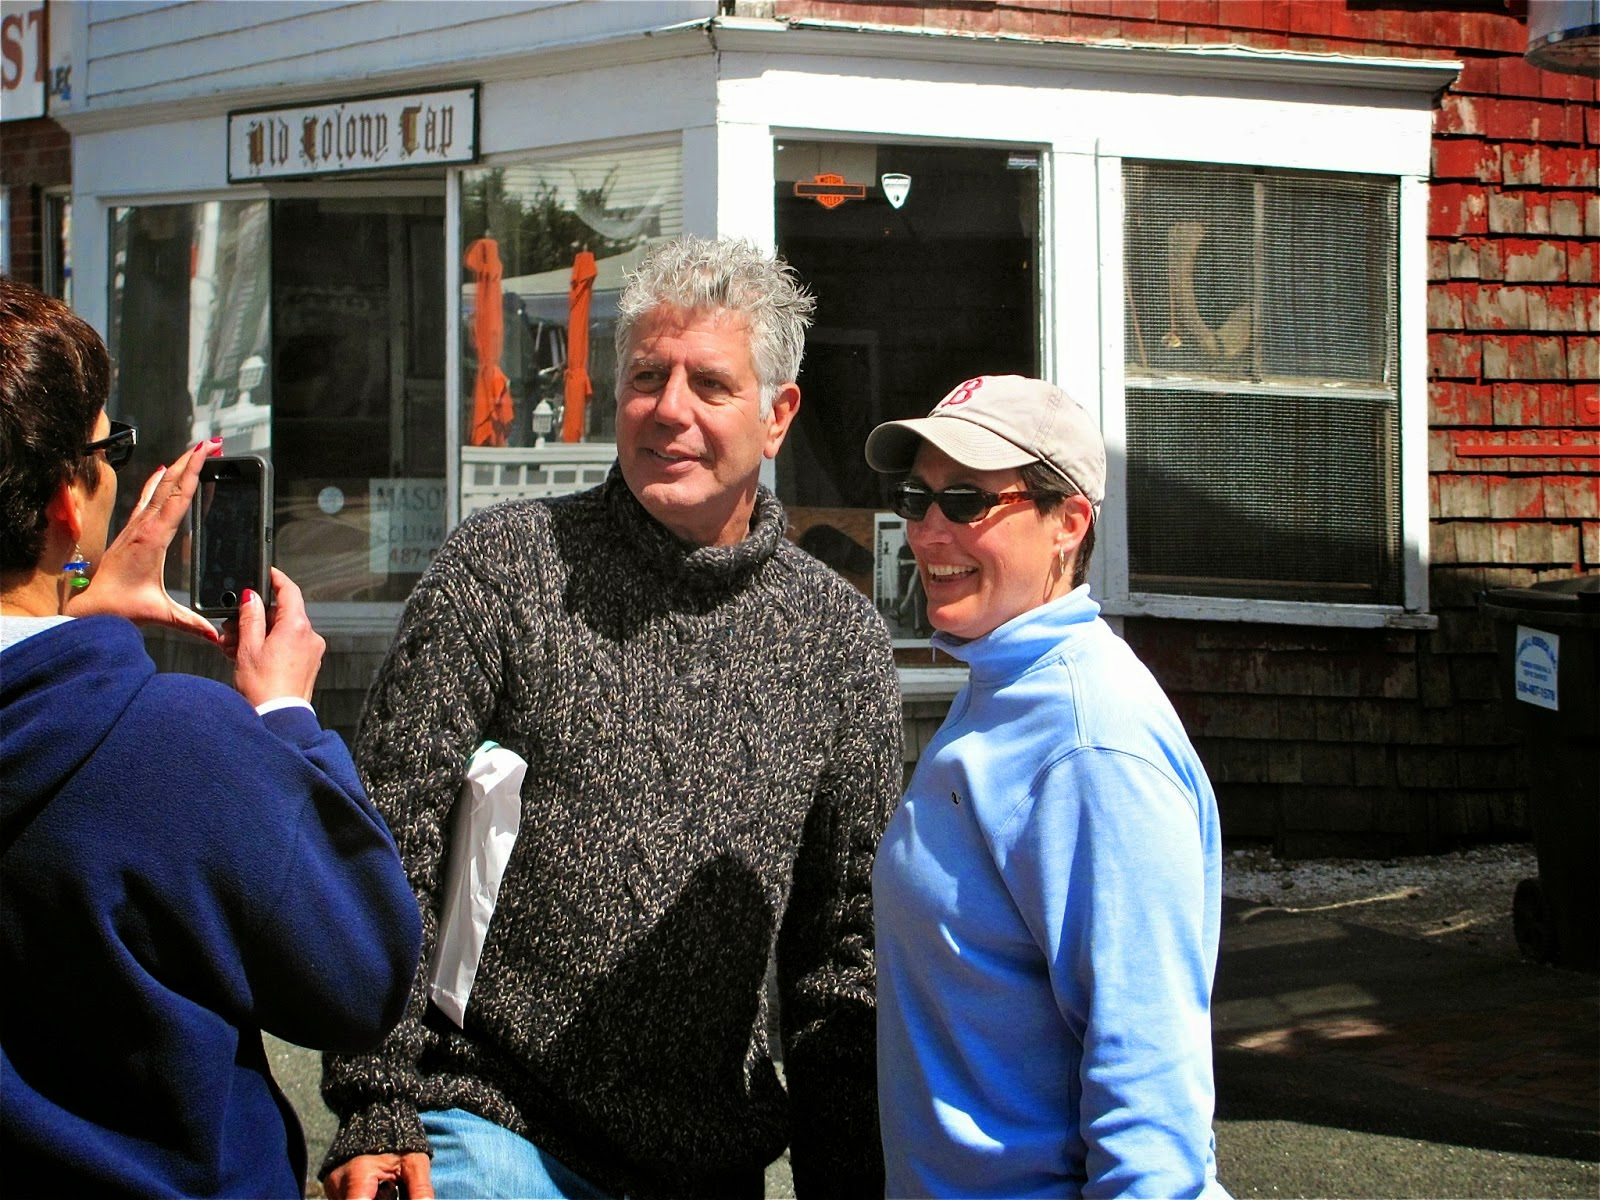 Famous foodie Anthony Bourdain held fond memories of youthful days in PTown, where his career began